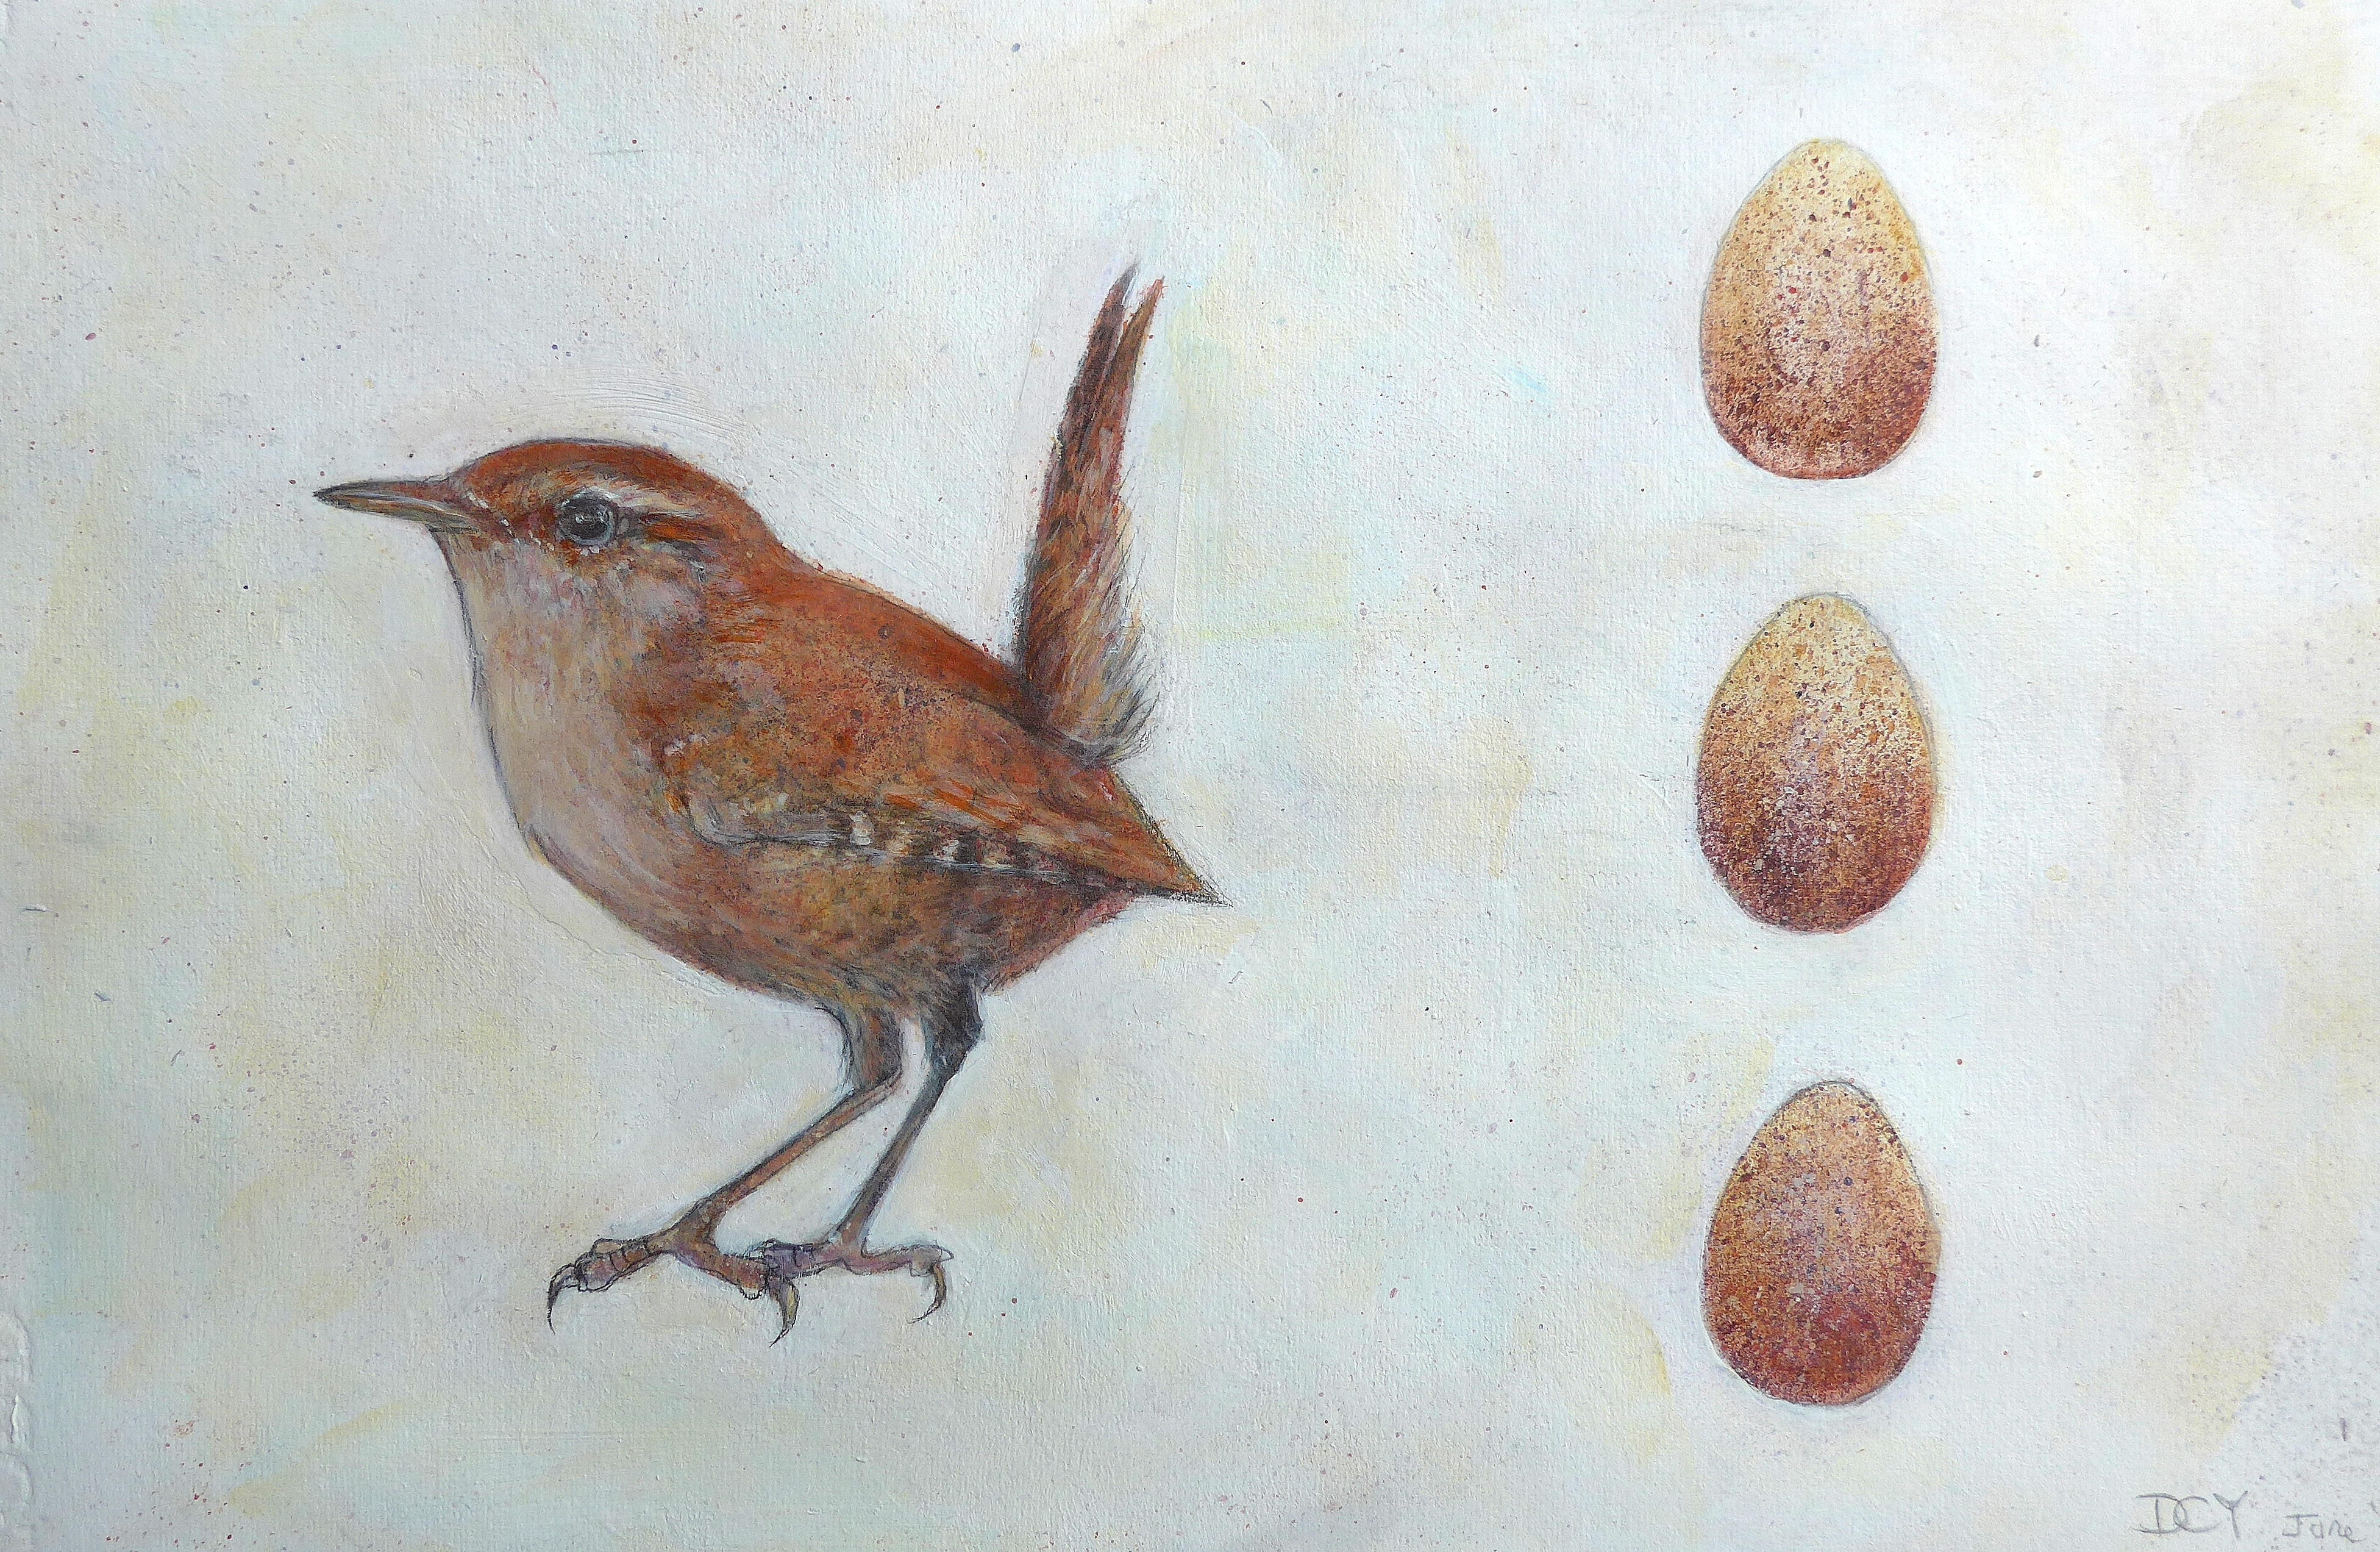 Painting showing painting of a wren and three eggs by artist Diane Young